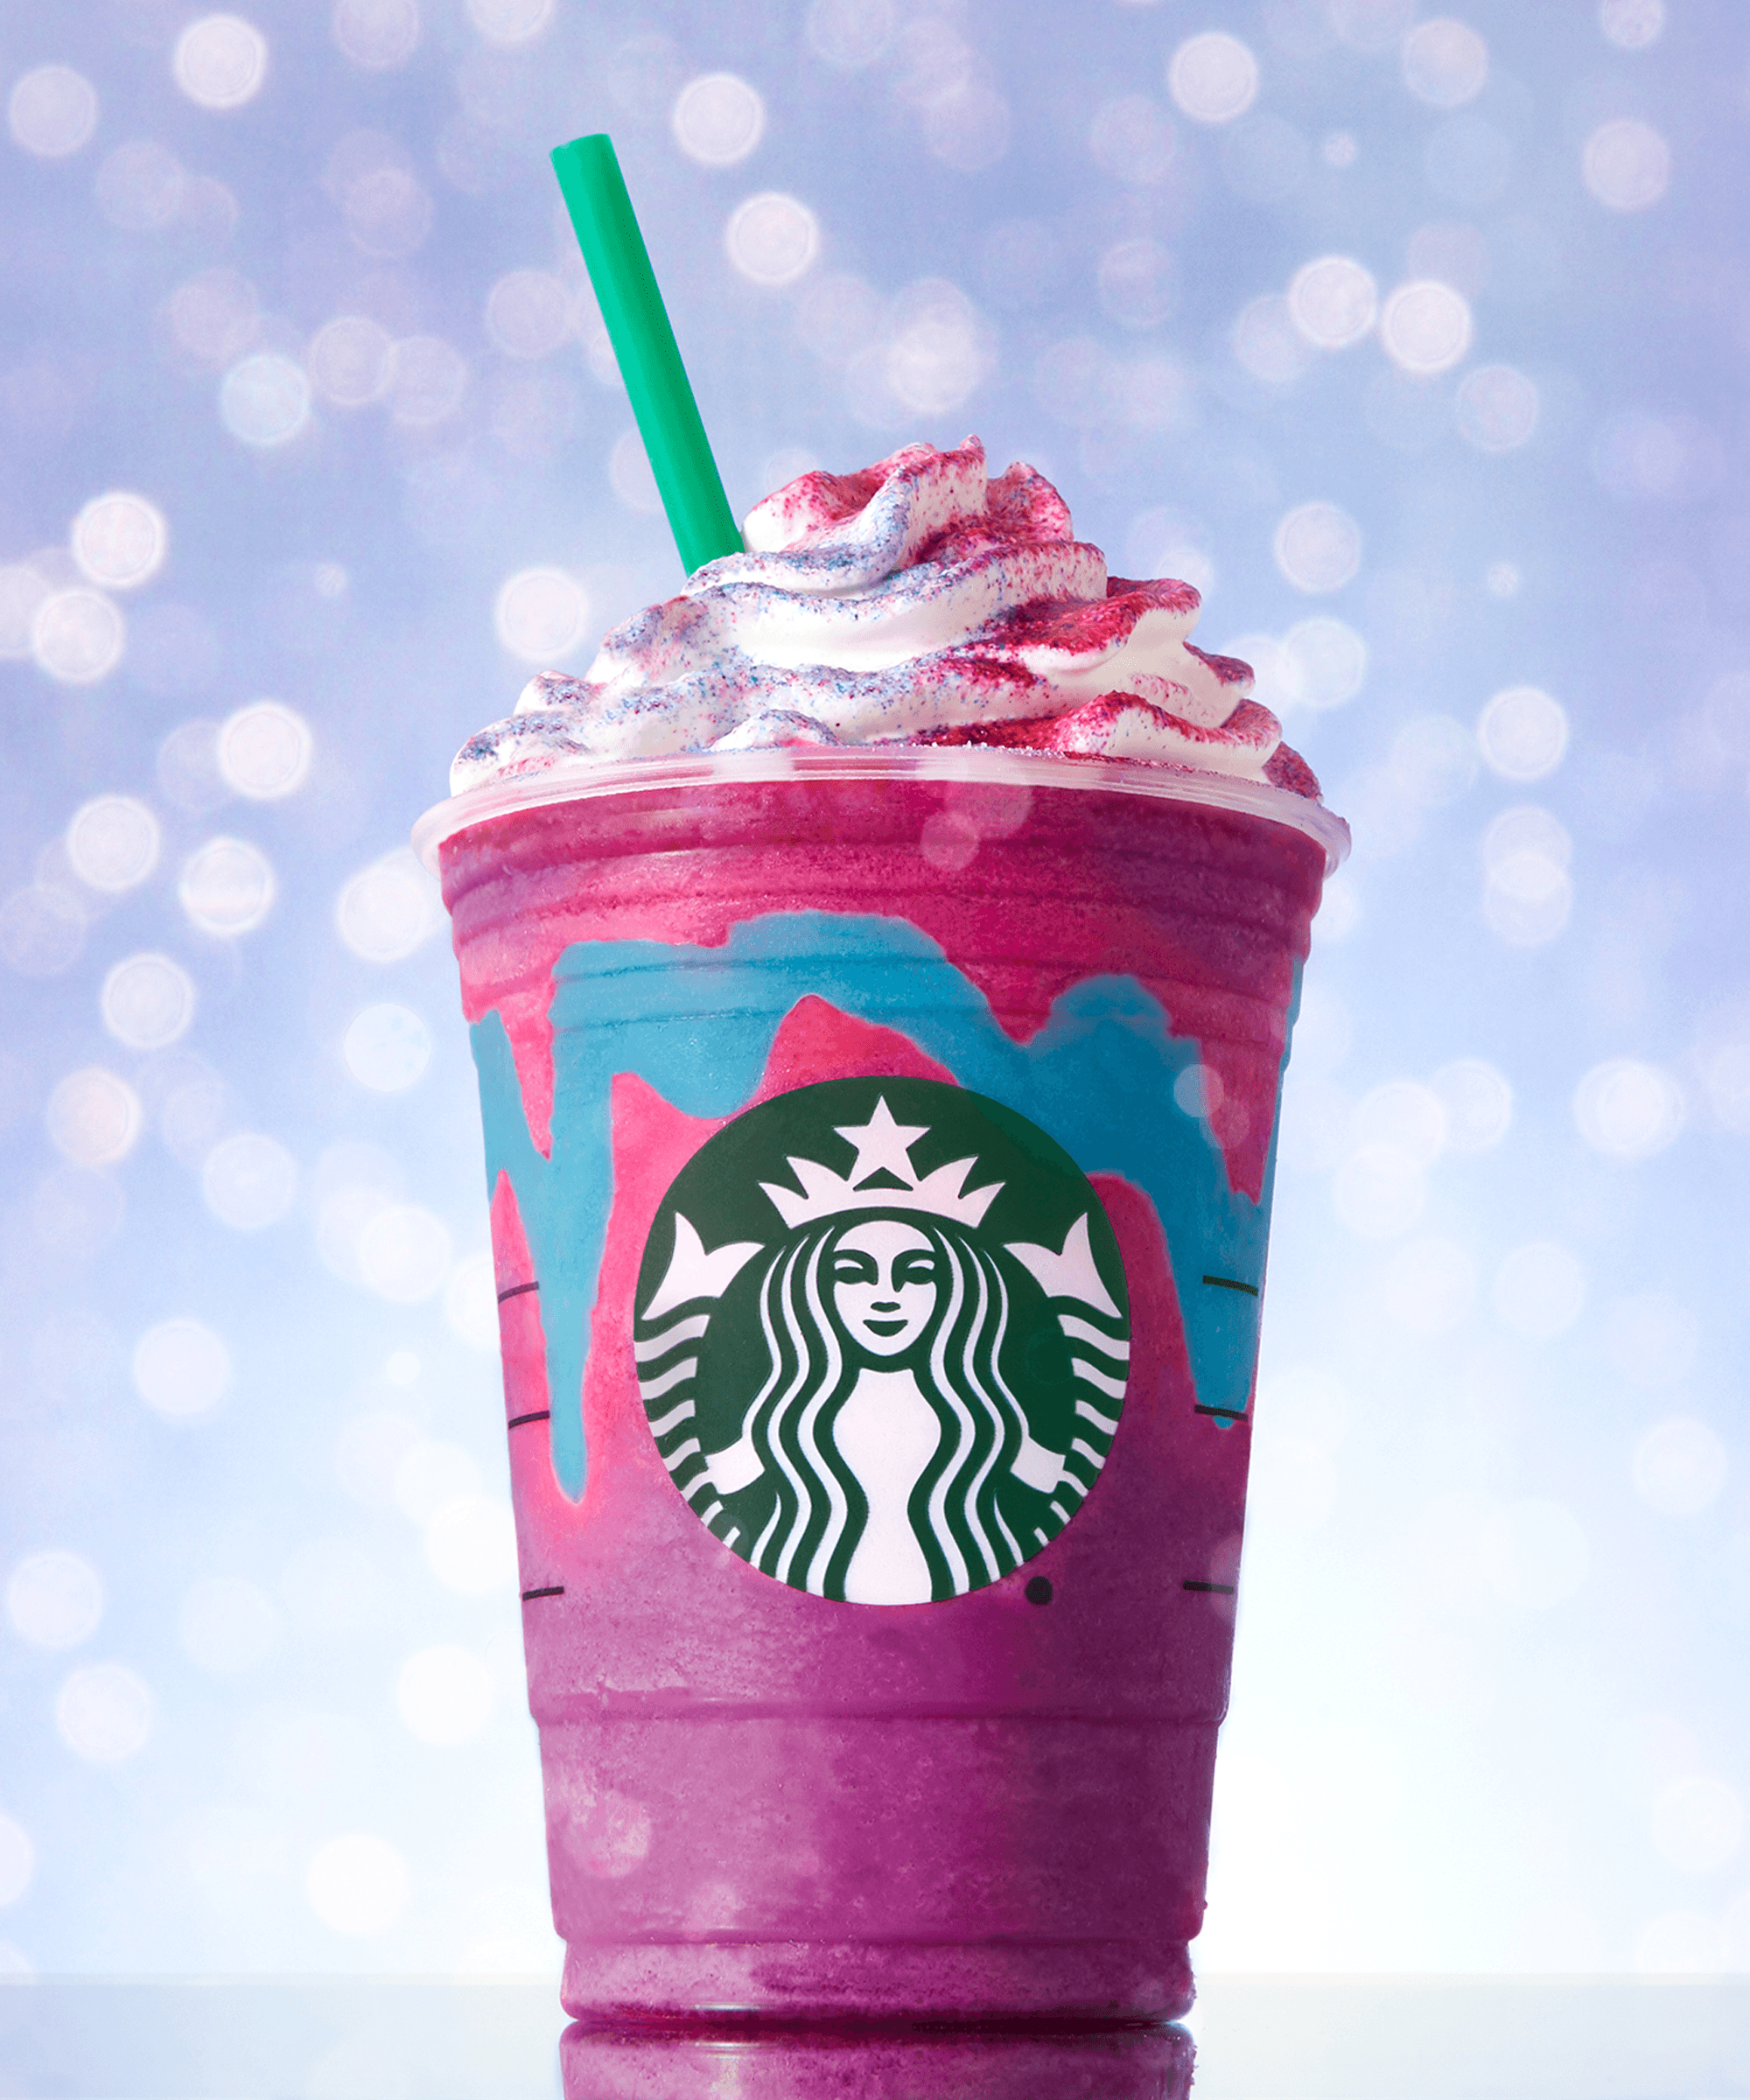 Get A Free Unicorn Frappuccino Singing Viral Video